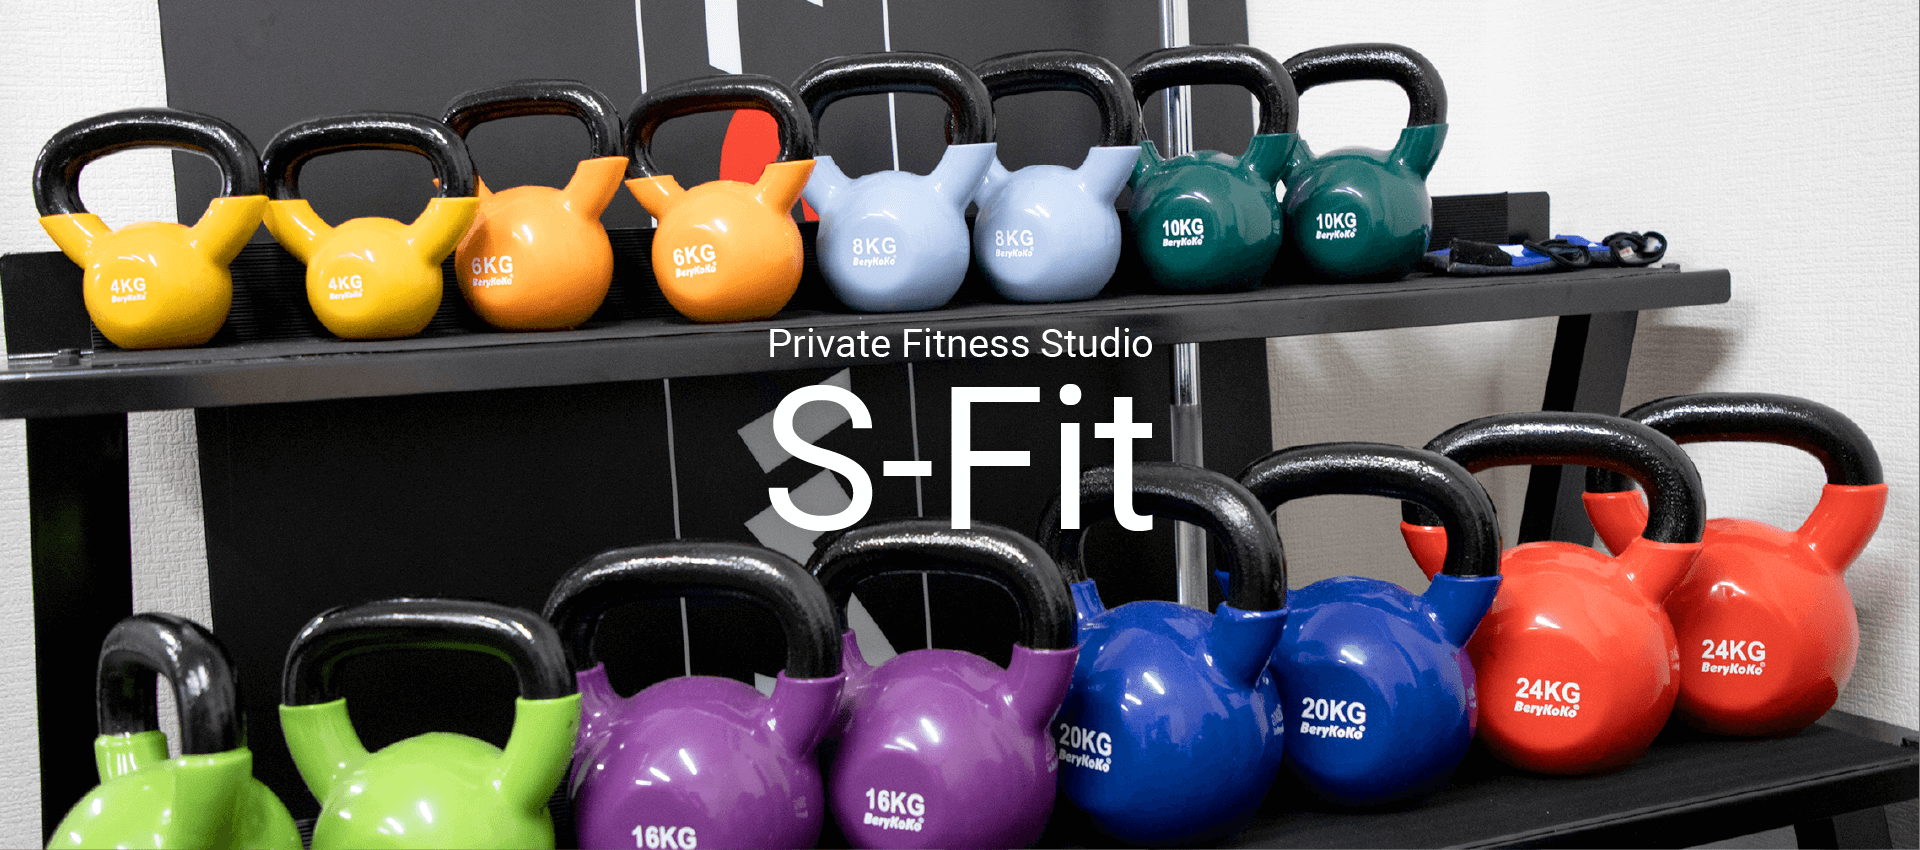 Private Fitness Studio S-Fit